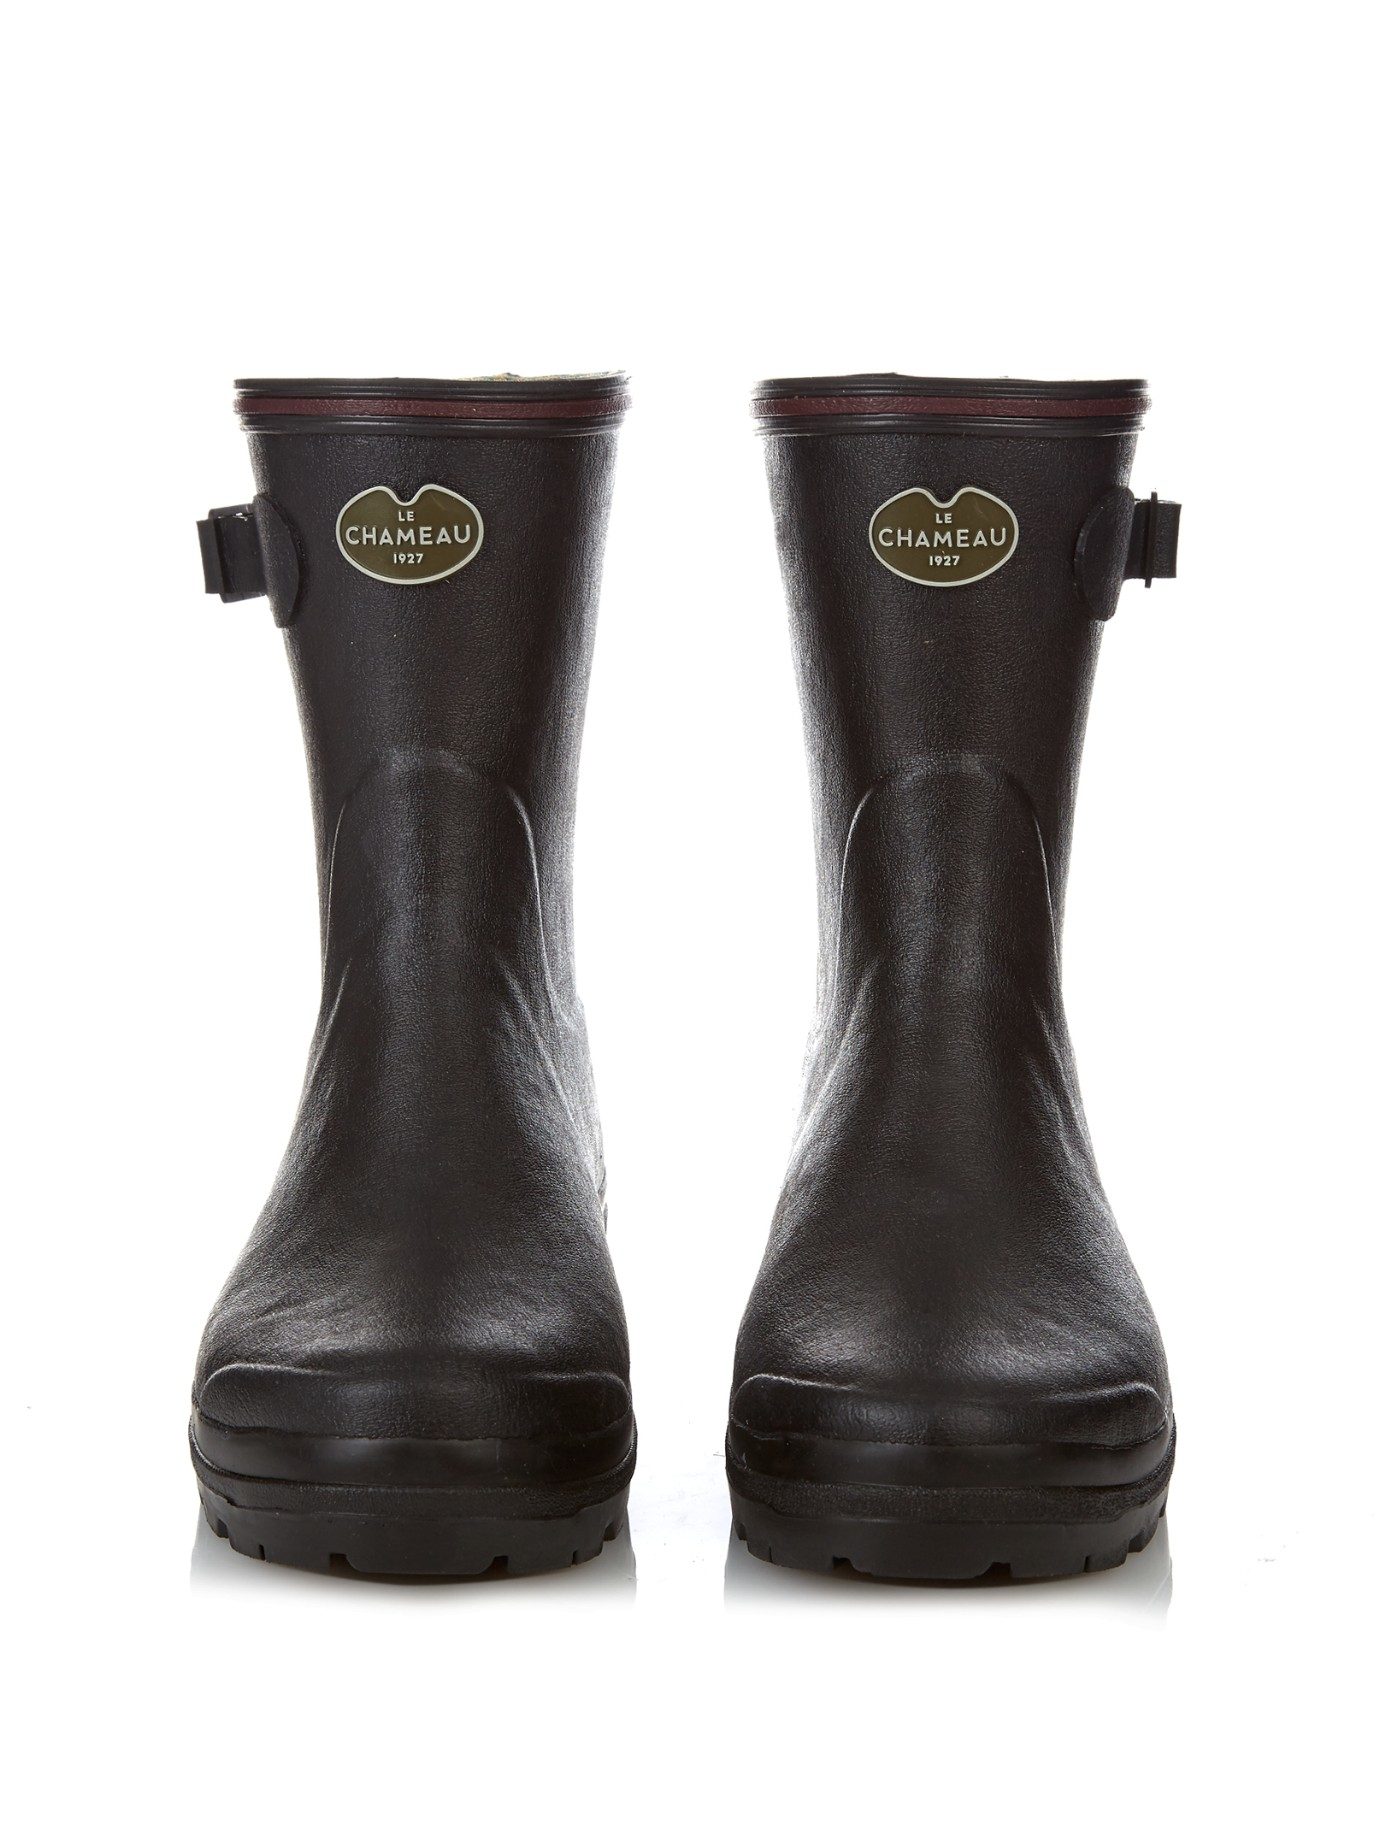 Le Chameau Giverny Low Rubber Boots in Black